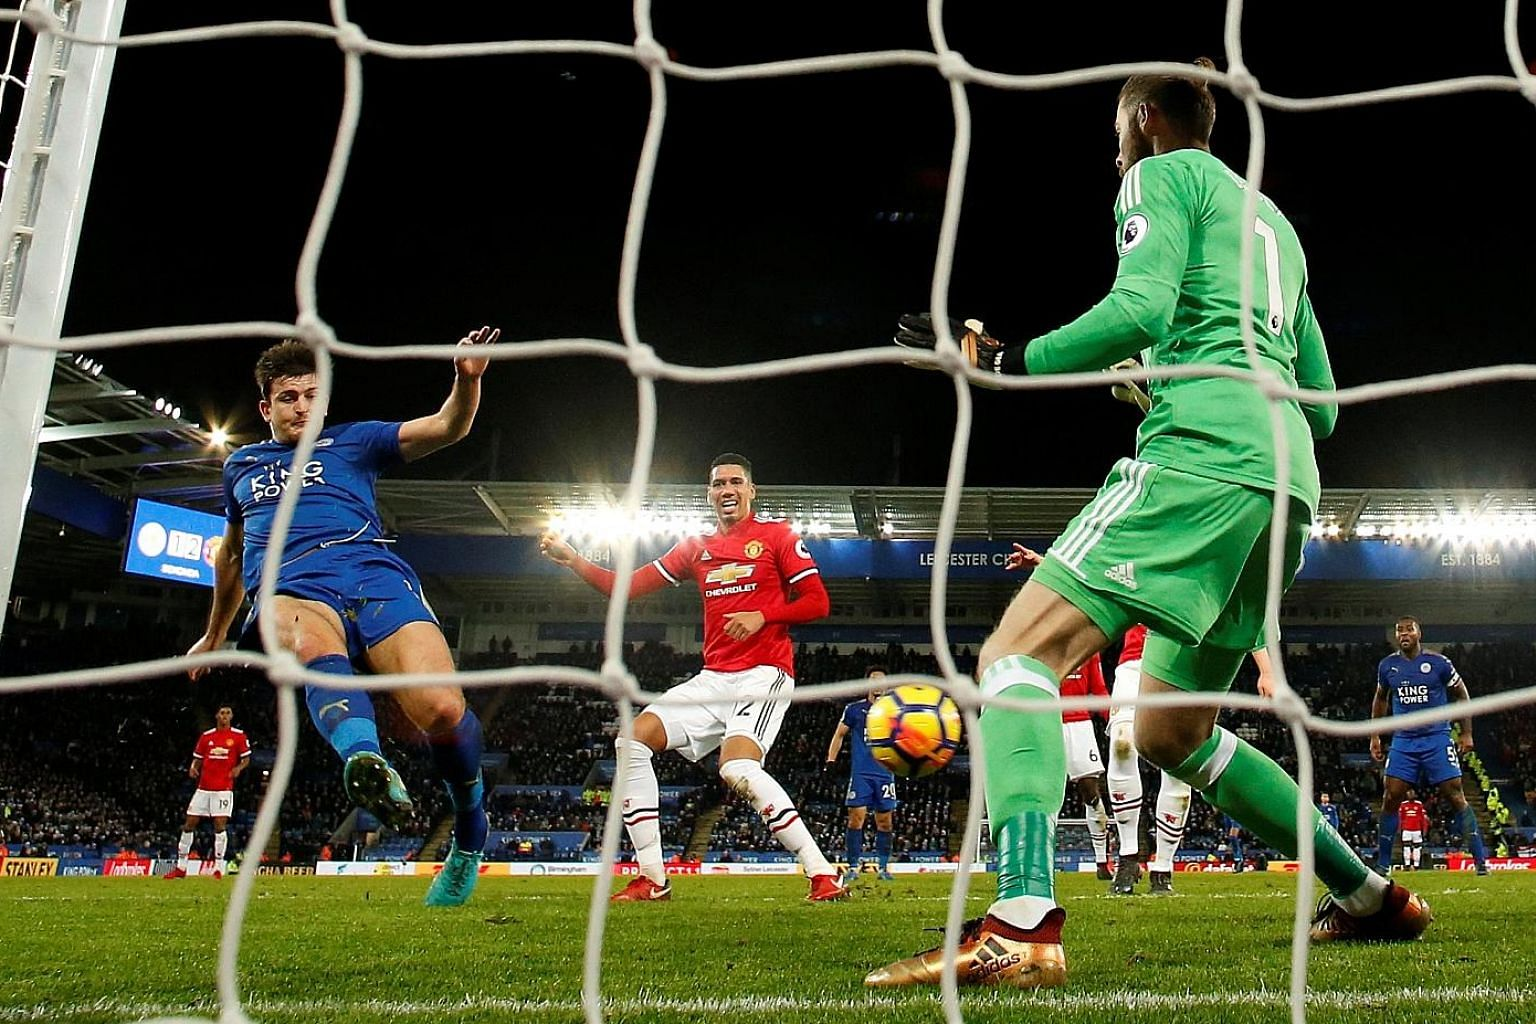 Harry Maguire equalising deep into stoppage time to rescue a point for 10-man Leicester against Manchester United and continue their good run under manager Claude Puel.